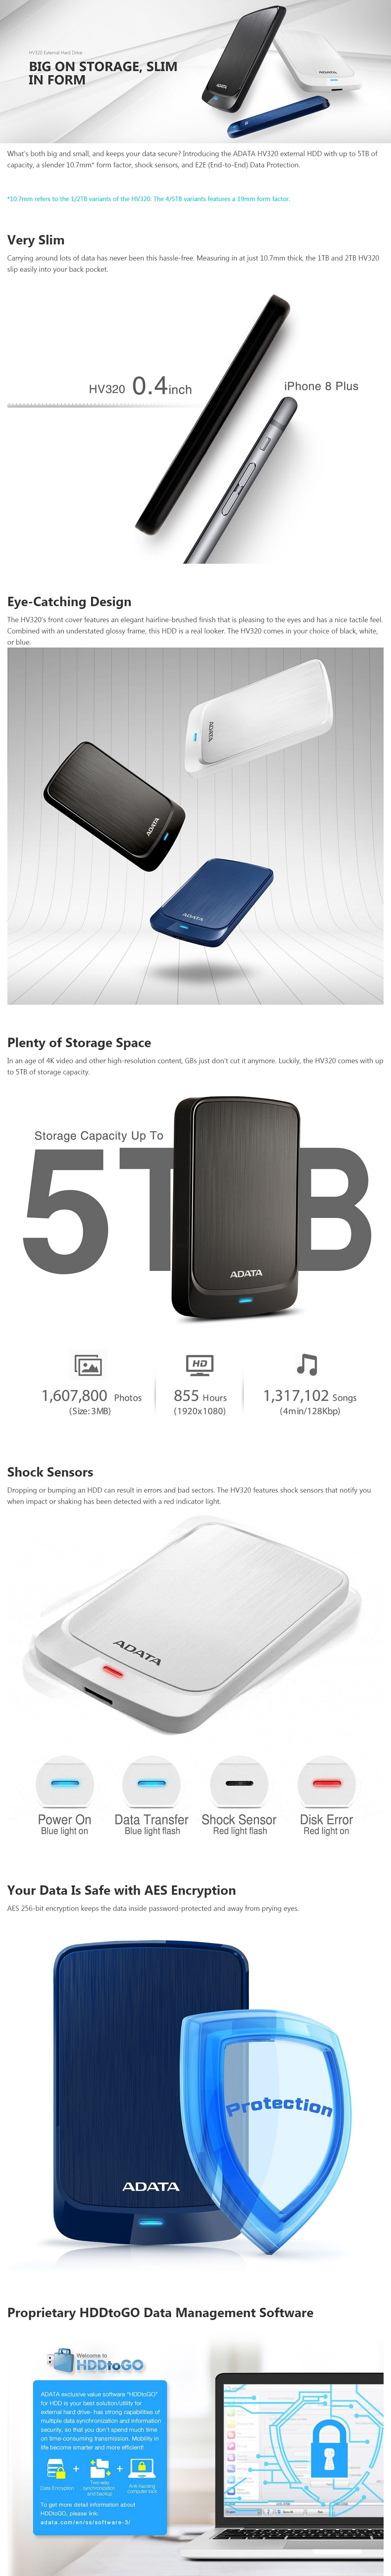 Adata HV320 5TB Slim External Hard Drive HDD Shock Protection USB 3.2 Gen1 Black